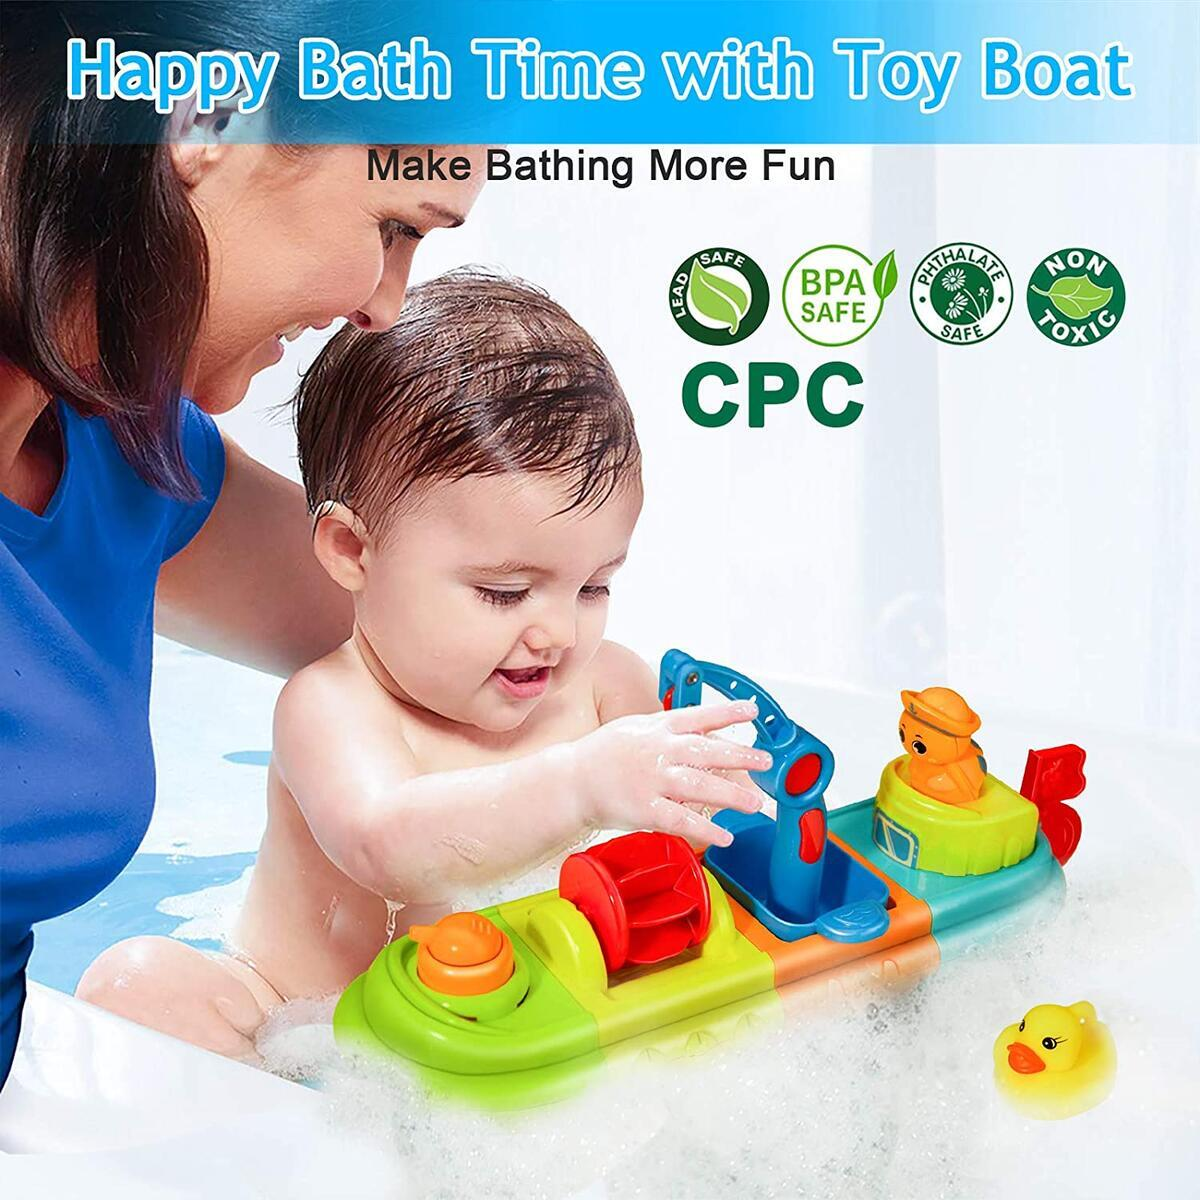 LBLA Baby Bath Toys for Toddlers 1-3, Fun Kids Bathtub Toys for Girls and Boys, Wind Up Toy Boat for Water Play Spray Toys for Kids with Duck and Turtle